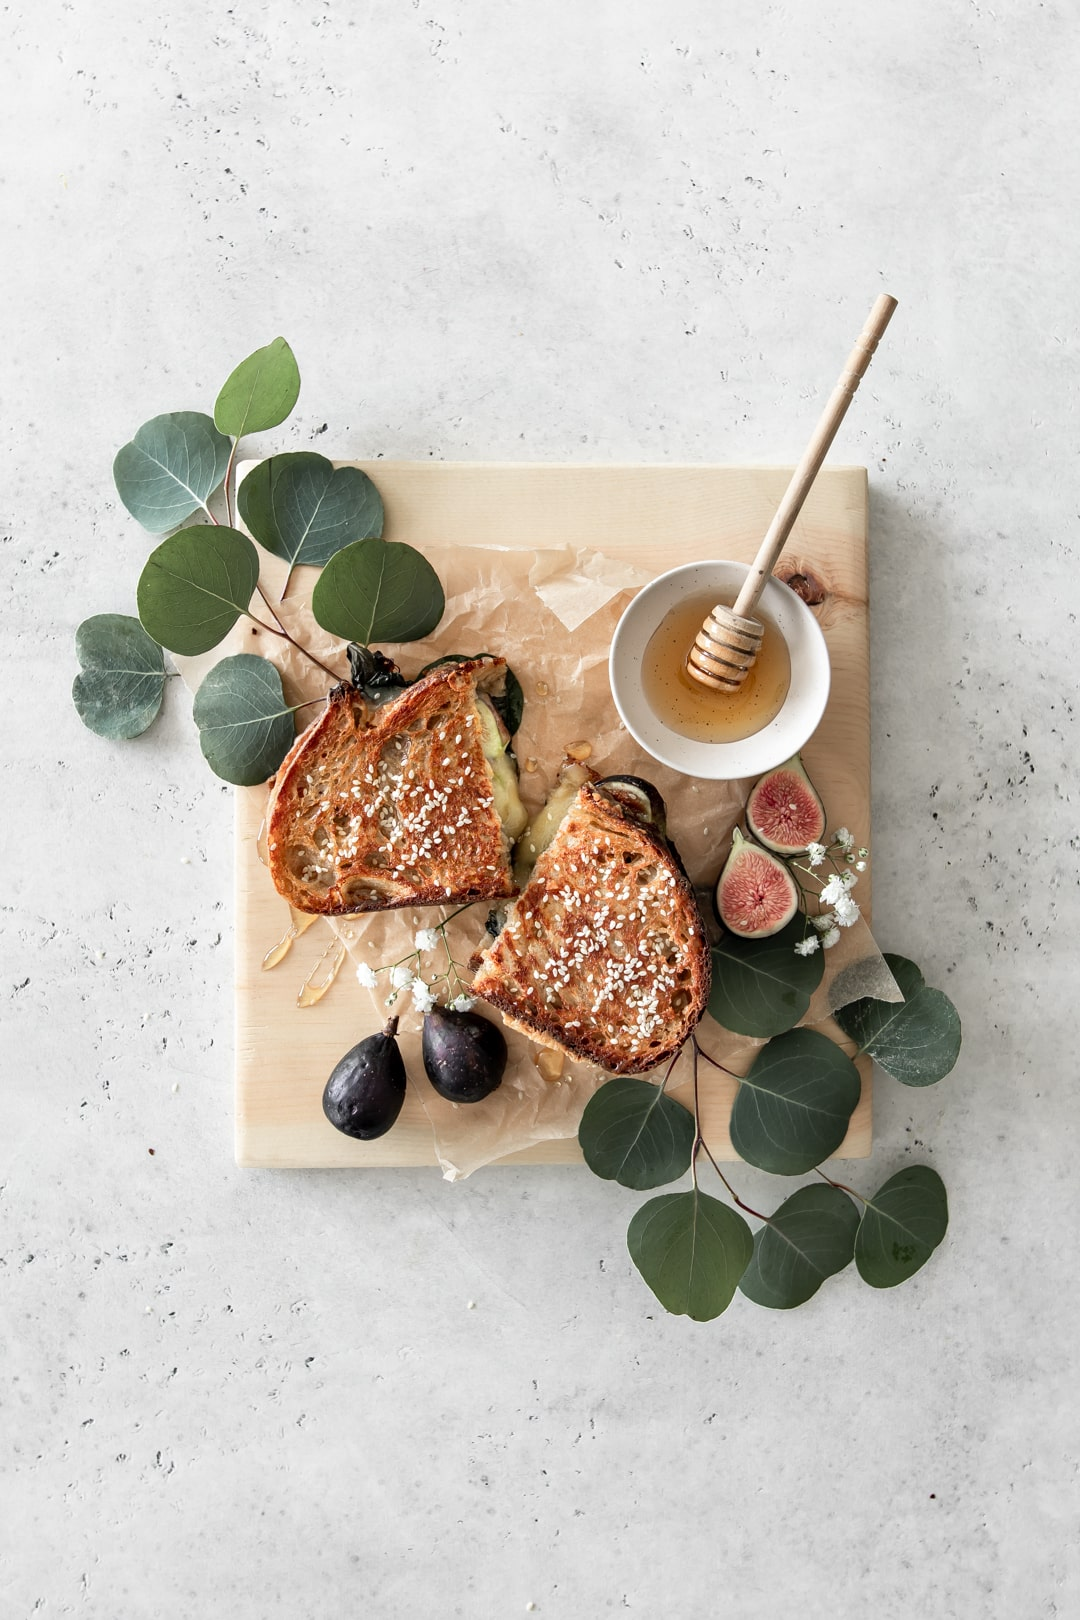 Gourmet grilled cheese halves on a wooden board with figs and honey.